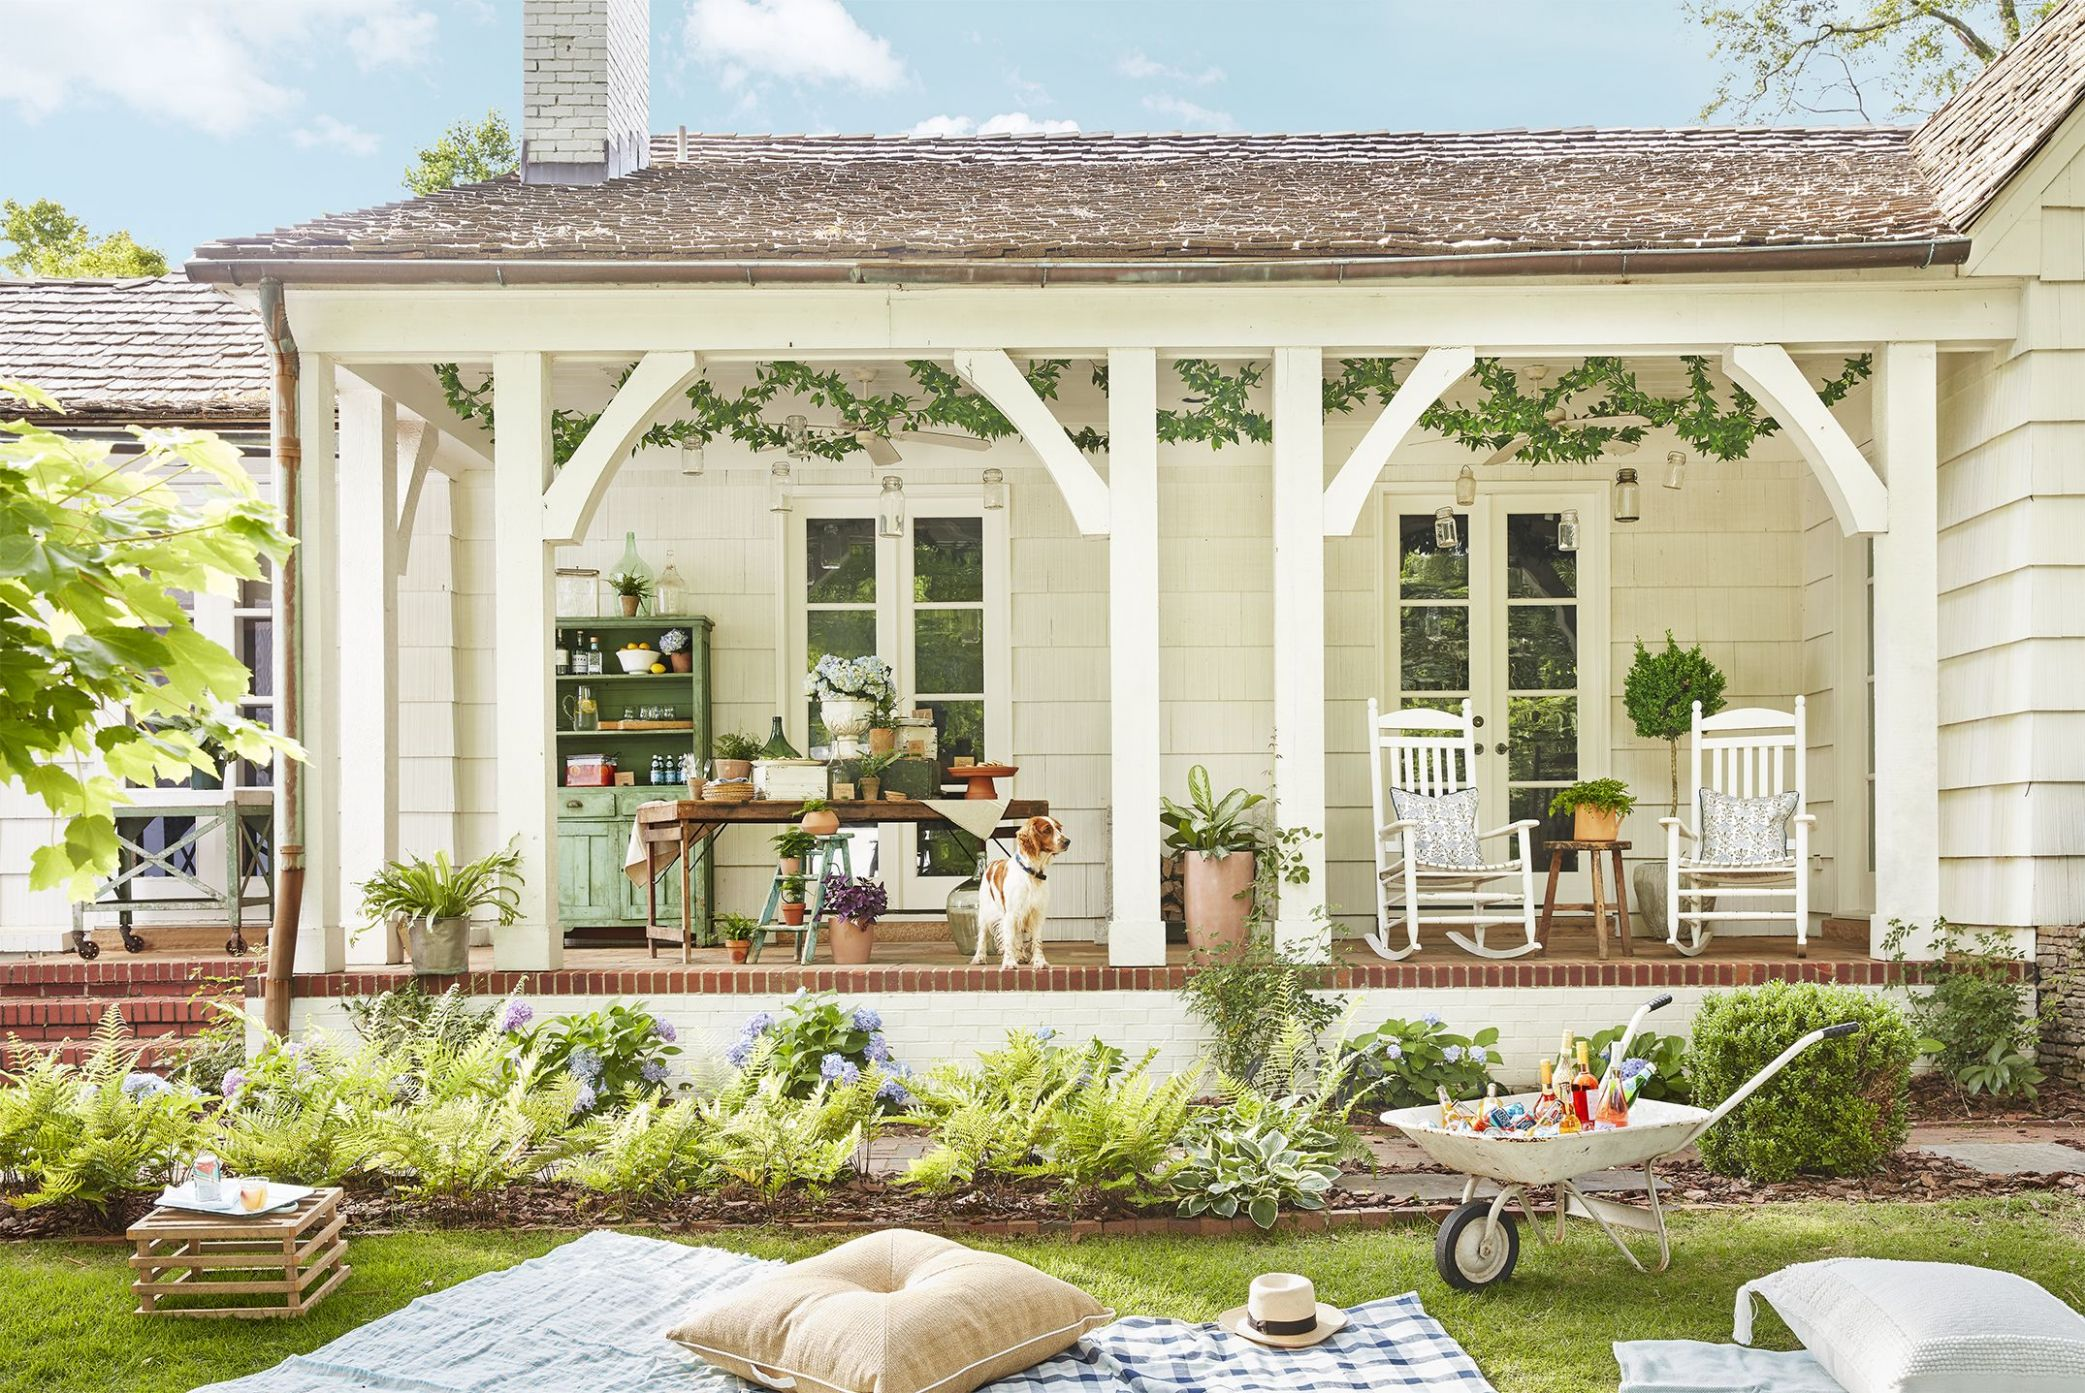 12 Best Front Porch Ideas - Ideas for Front Porch and Patio Decorating